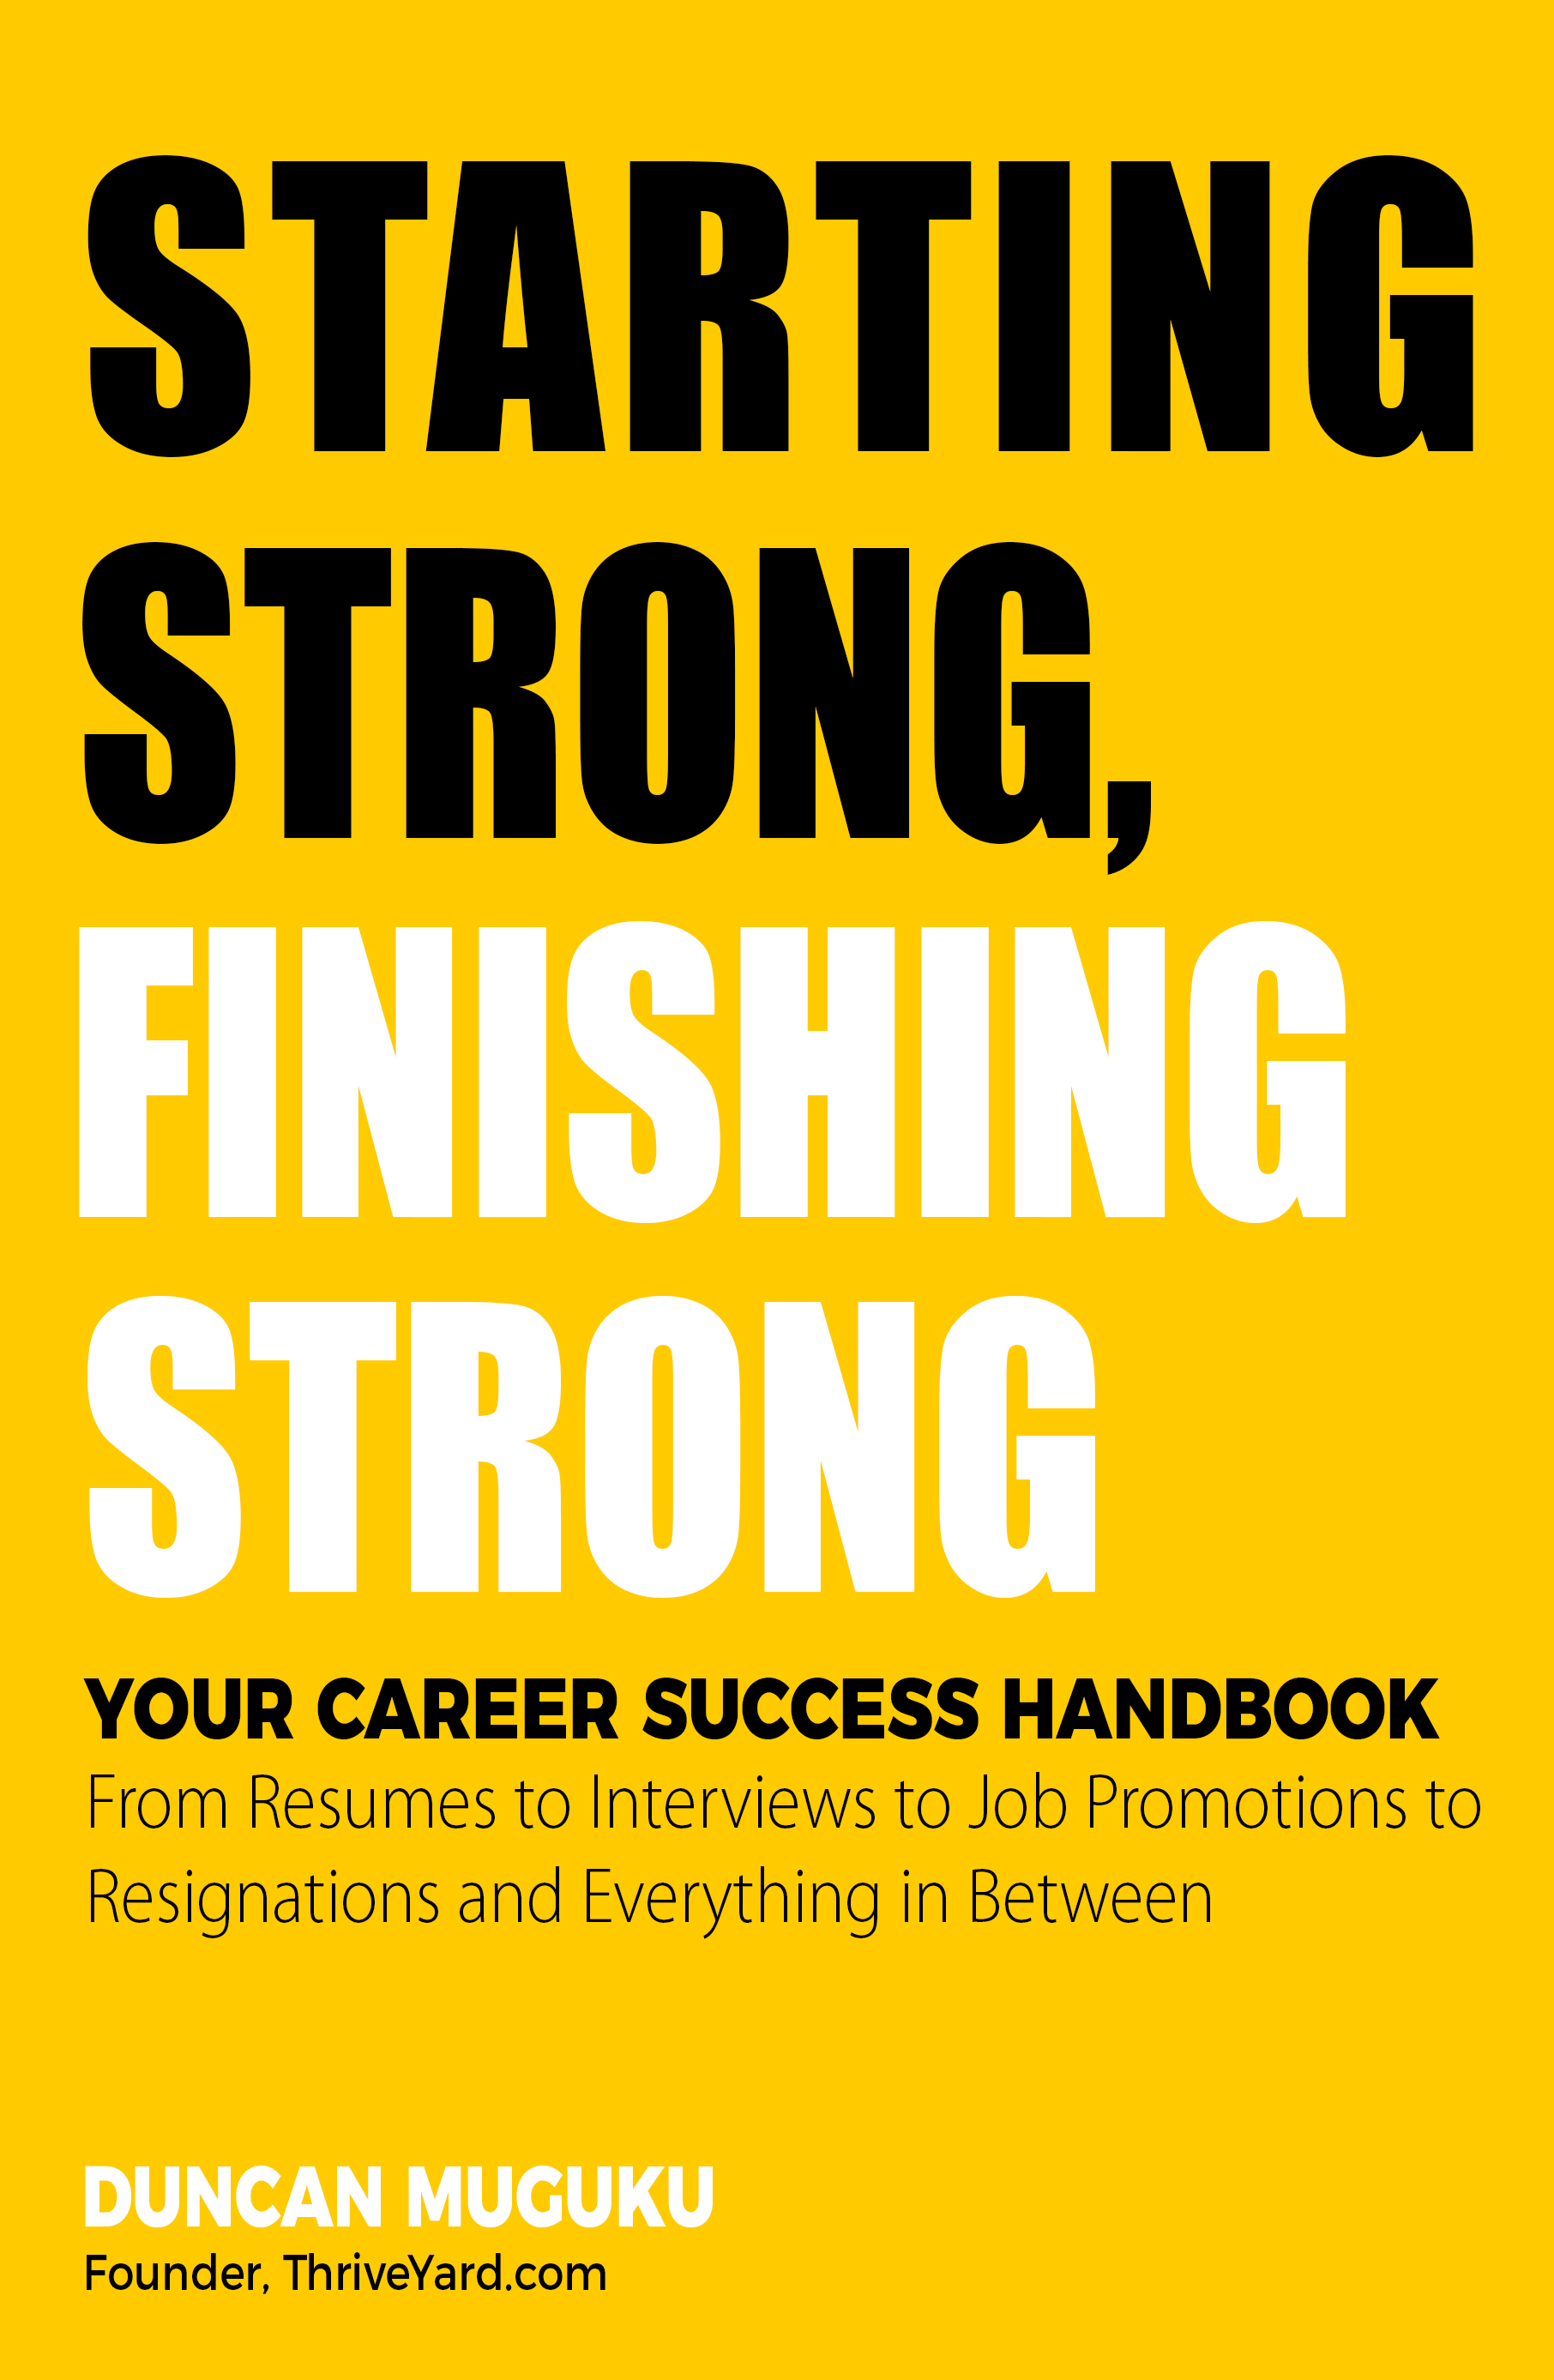 Starting Strong, Finishing Strong Your Career Success Handbook